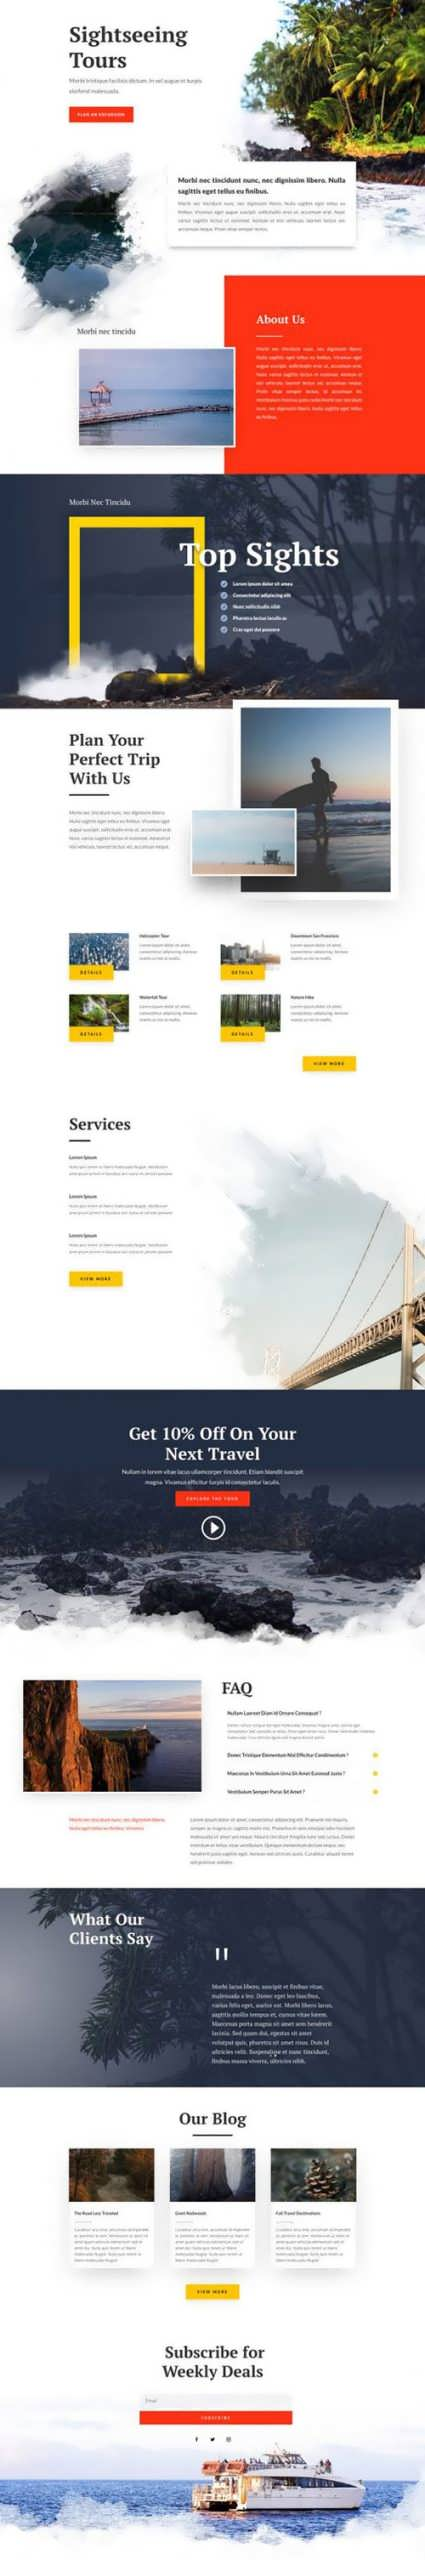 sightseeing landing page scaled